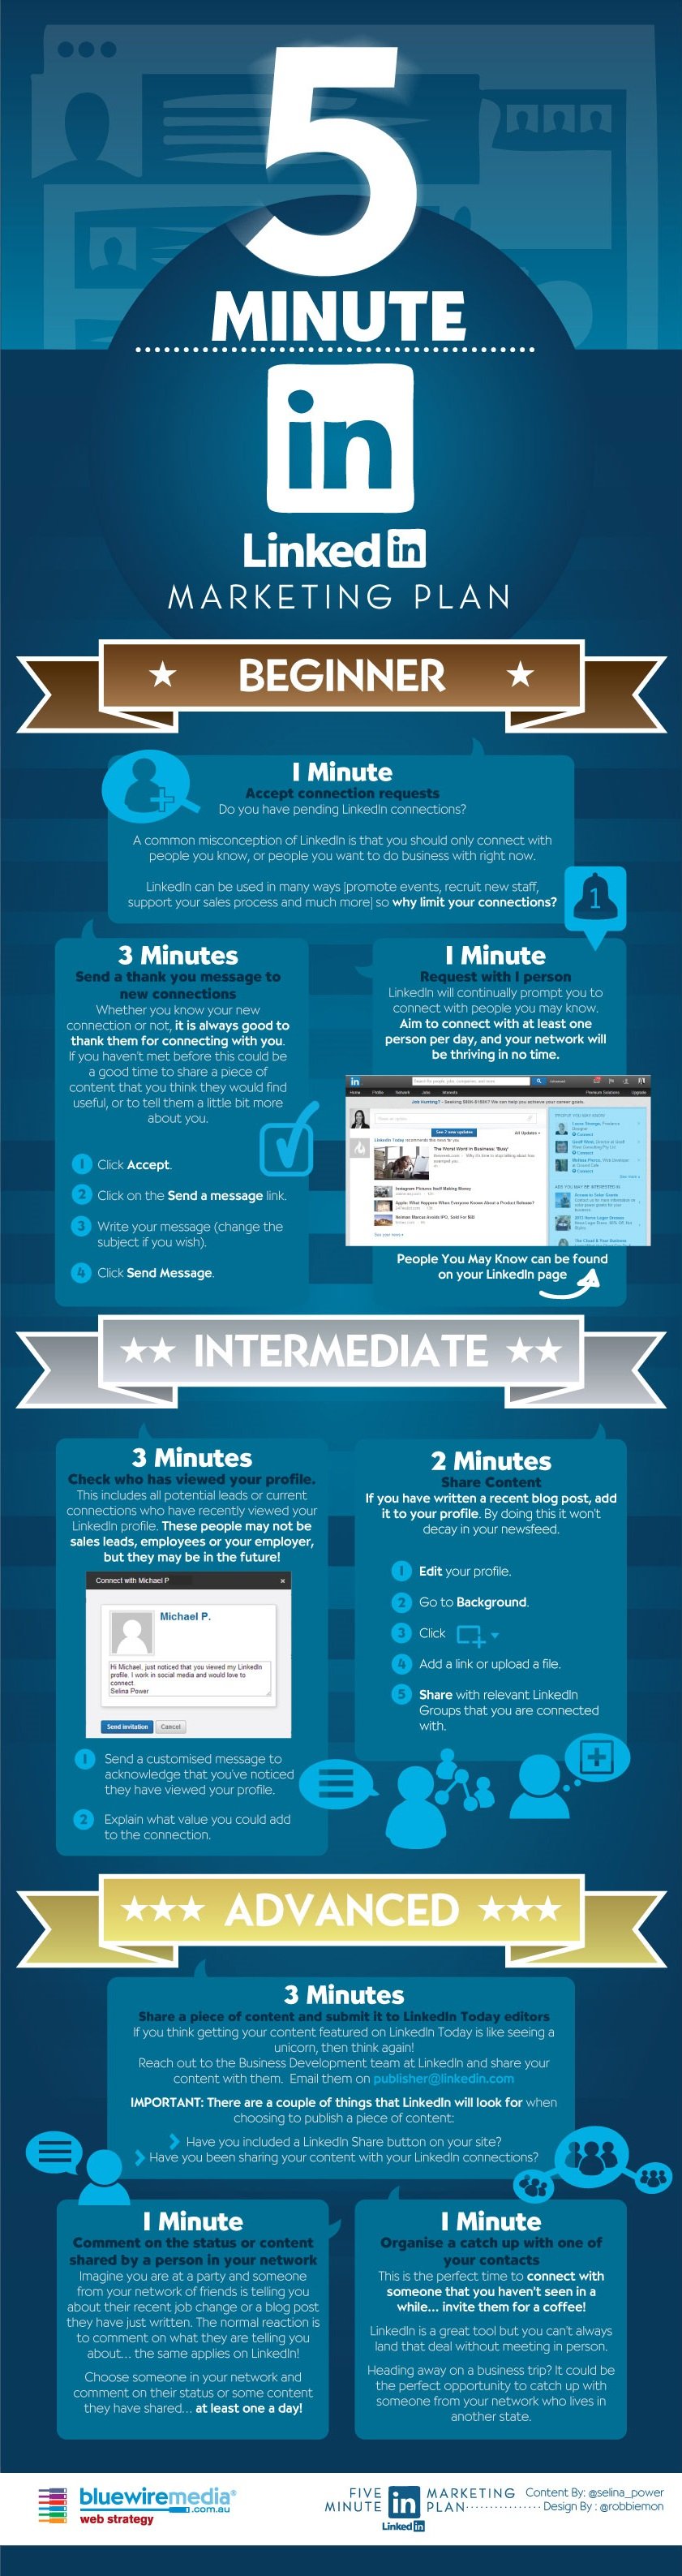 5-Minute-Linkedin-Mangement-Plan-for-Users-of-All-Levels